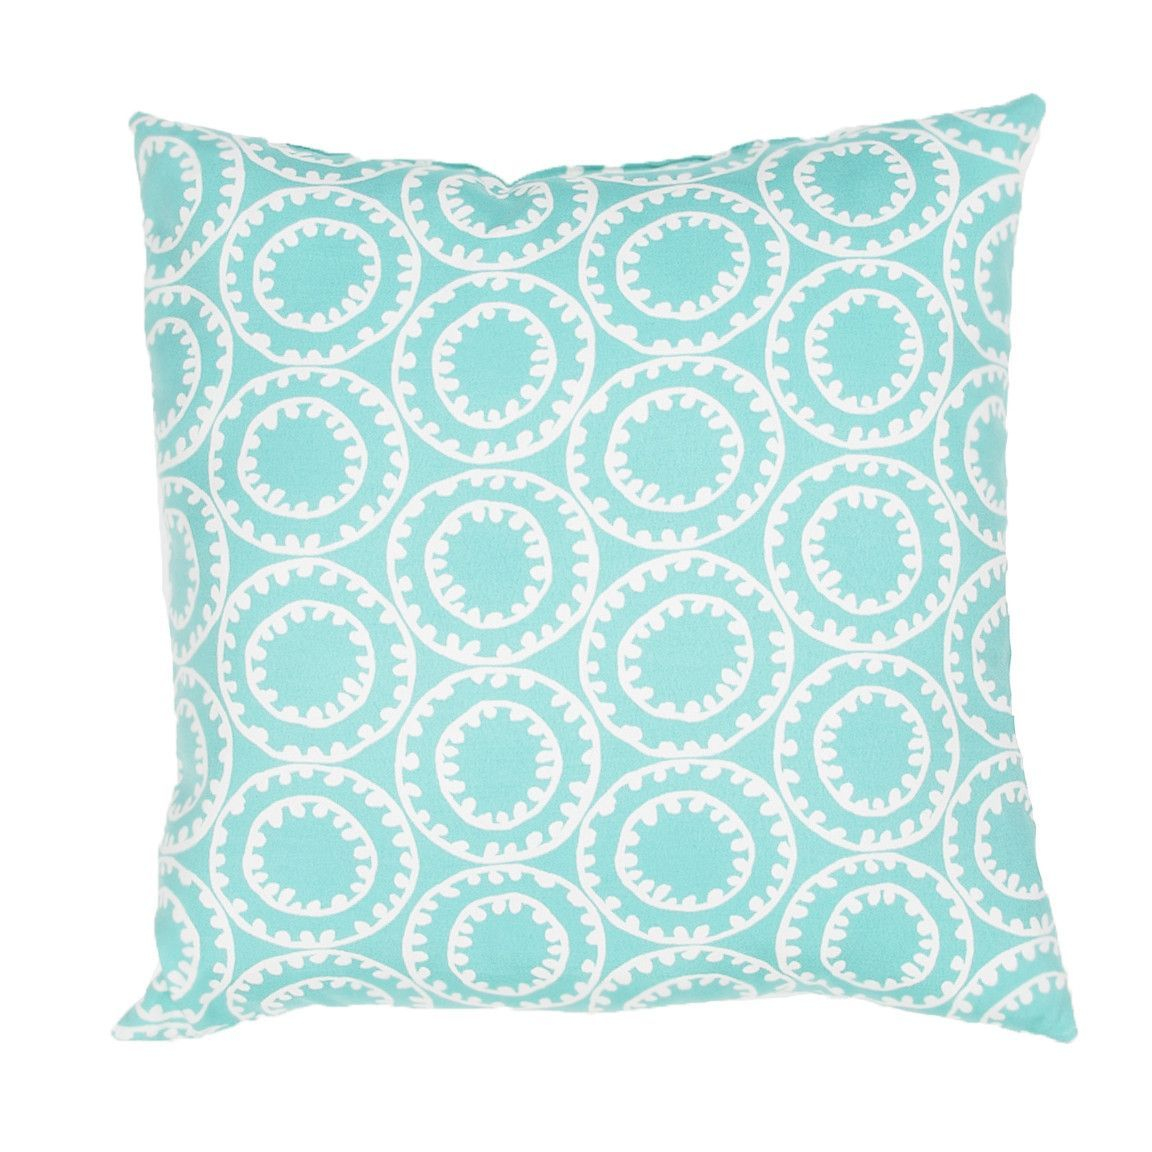 veranda geometric indooroutdoor throw pillow  products  - veranda geometric indooroutdoor throw pillow